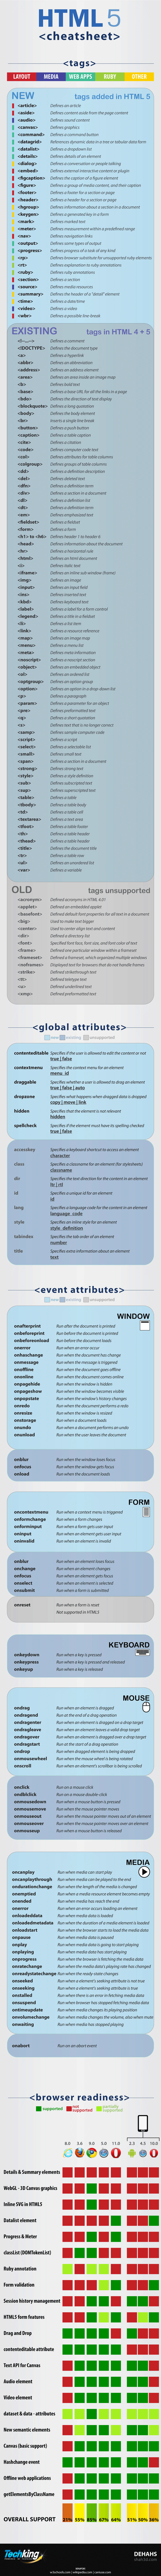 Infographic: Ultimate HTML5 Cheatsheat